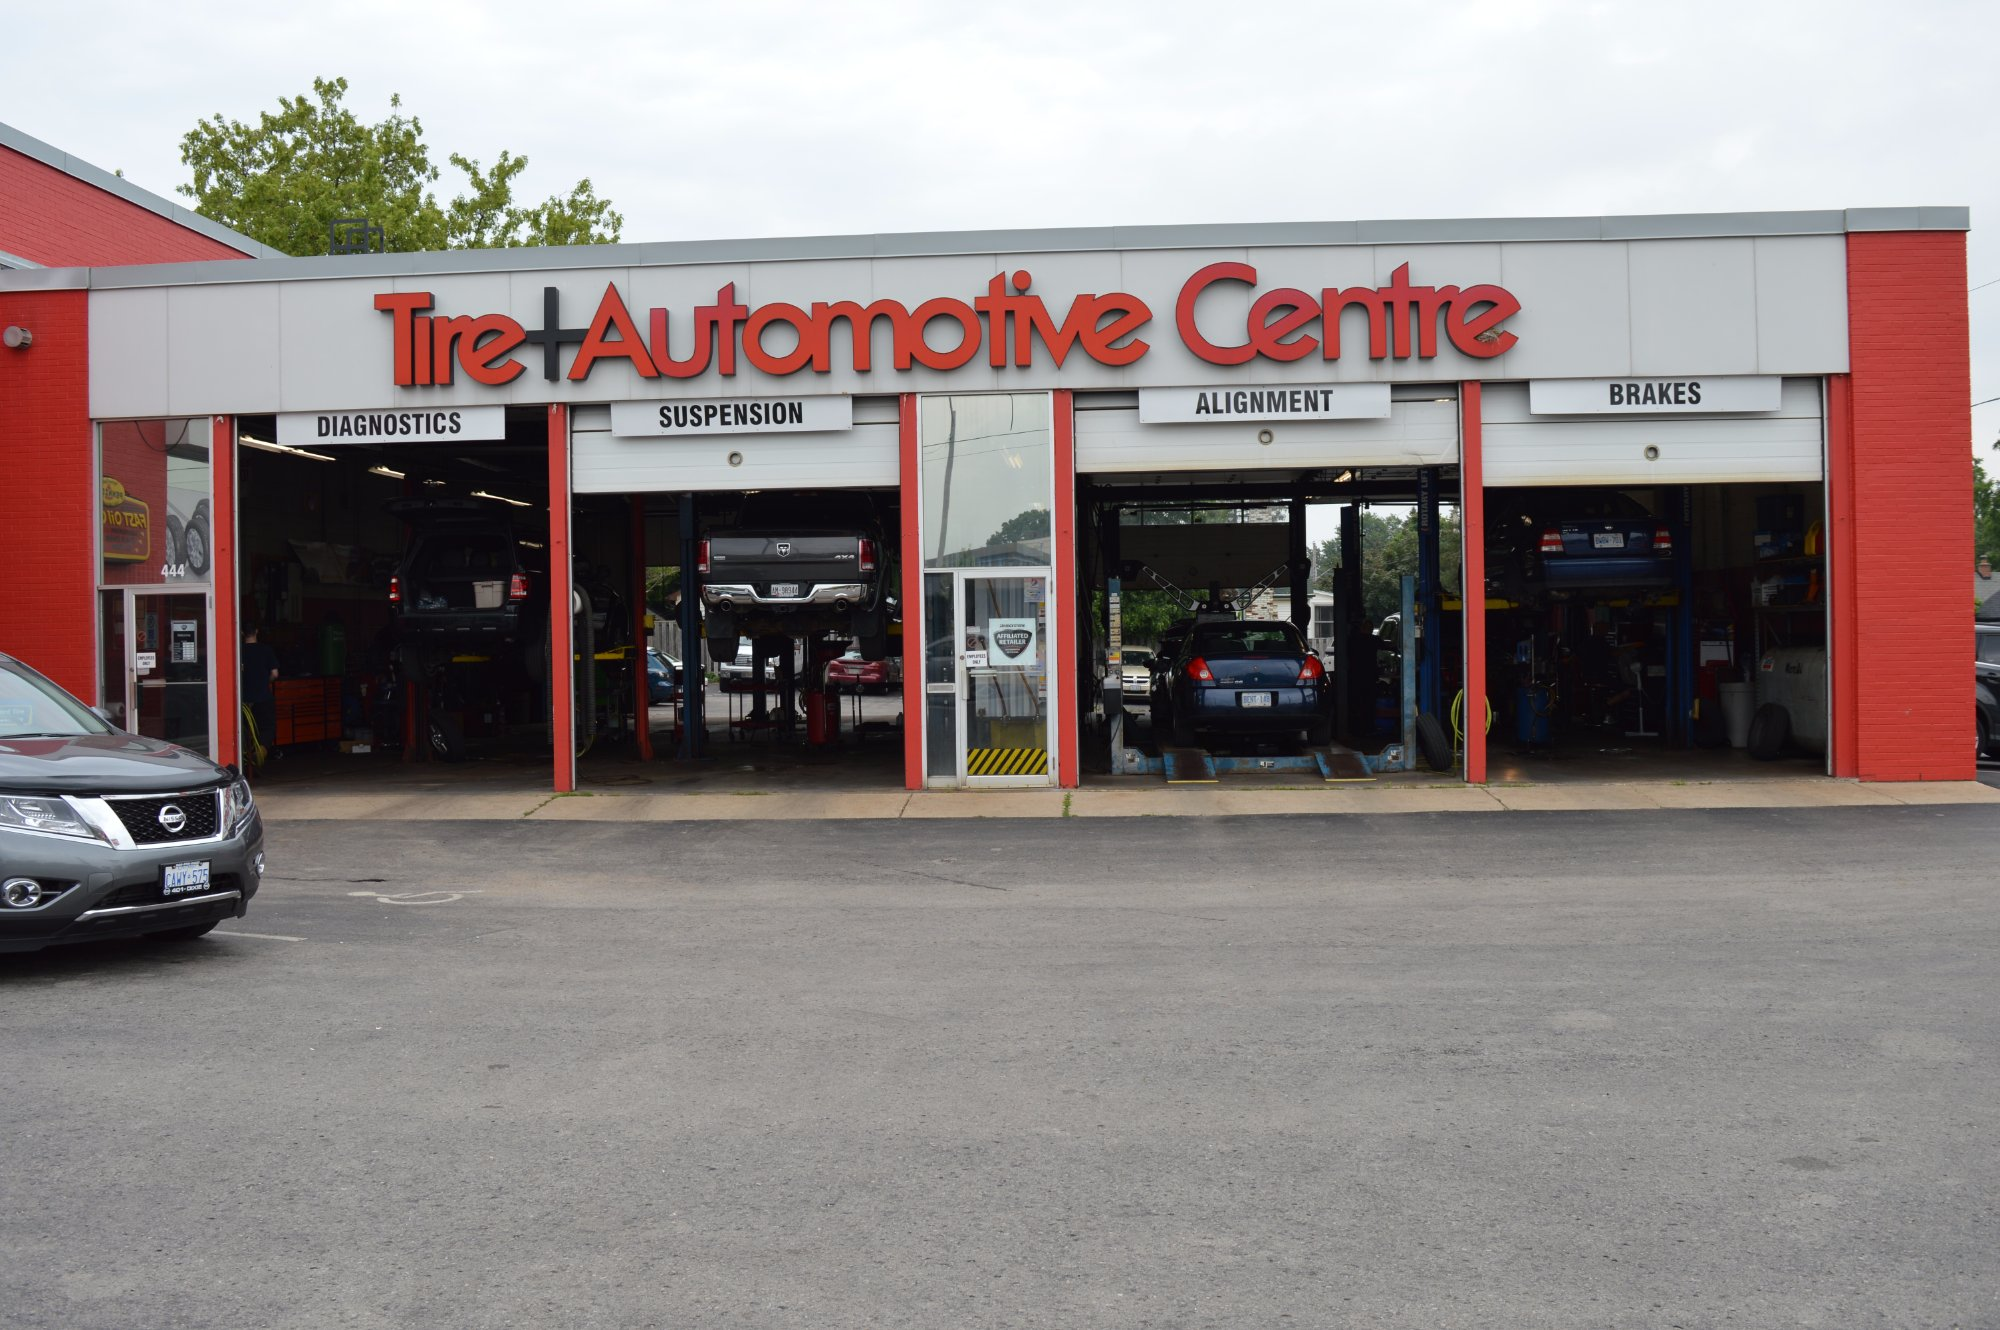 Hanford Tire and Automotive Centre